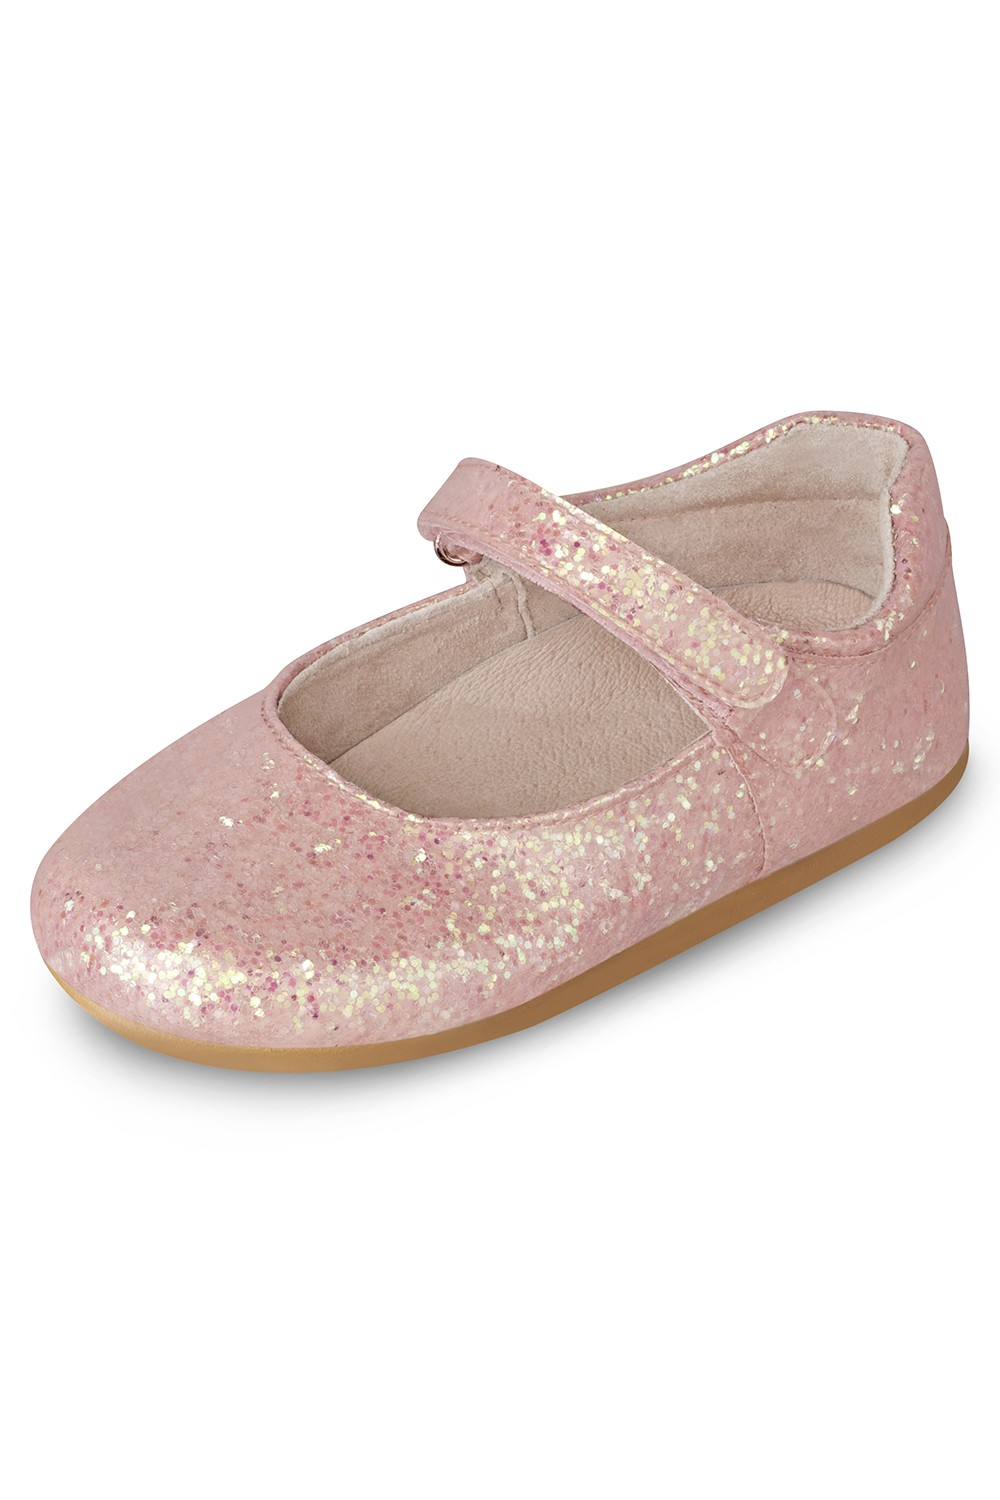 Free shipping BOTH ways on ballet flats for kids, from our vast selection of styles. Fast delivery, and 24/7/ real-person service with a smile. Click or call